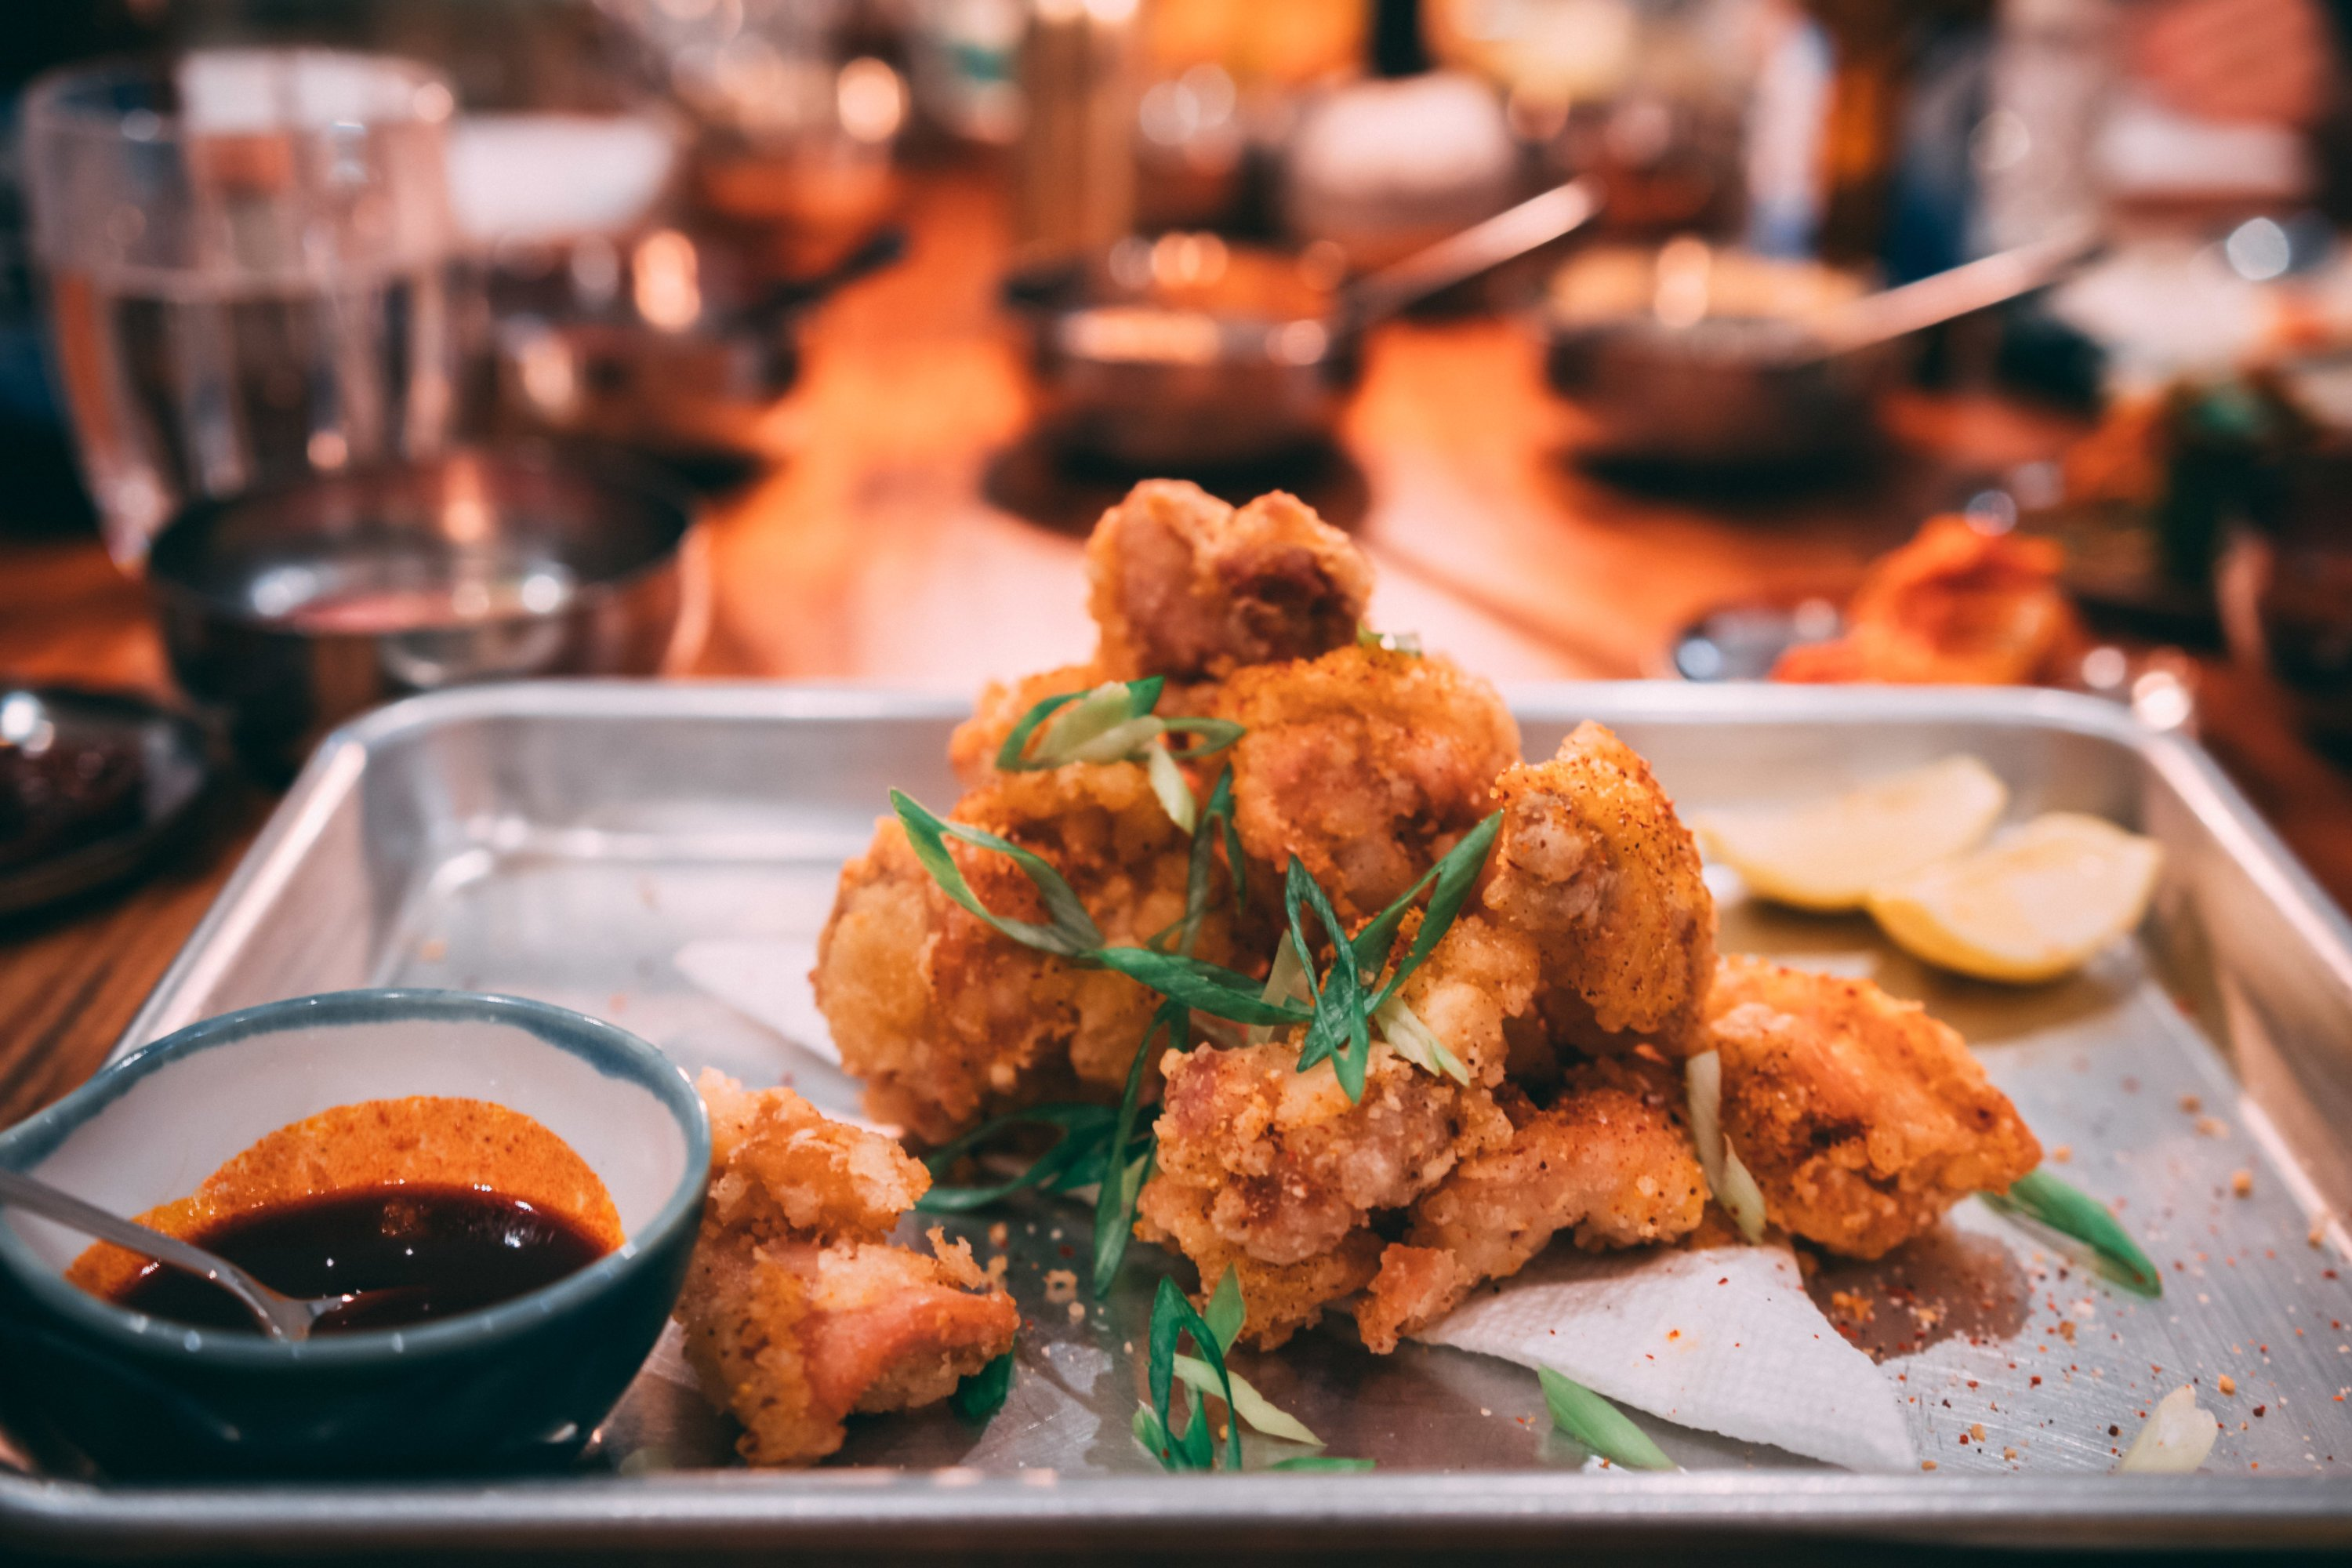 Anju is the Korean term for food that's meant to be eaten with alcohol, like this fried chicken.